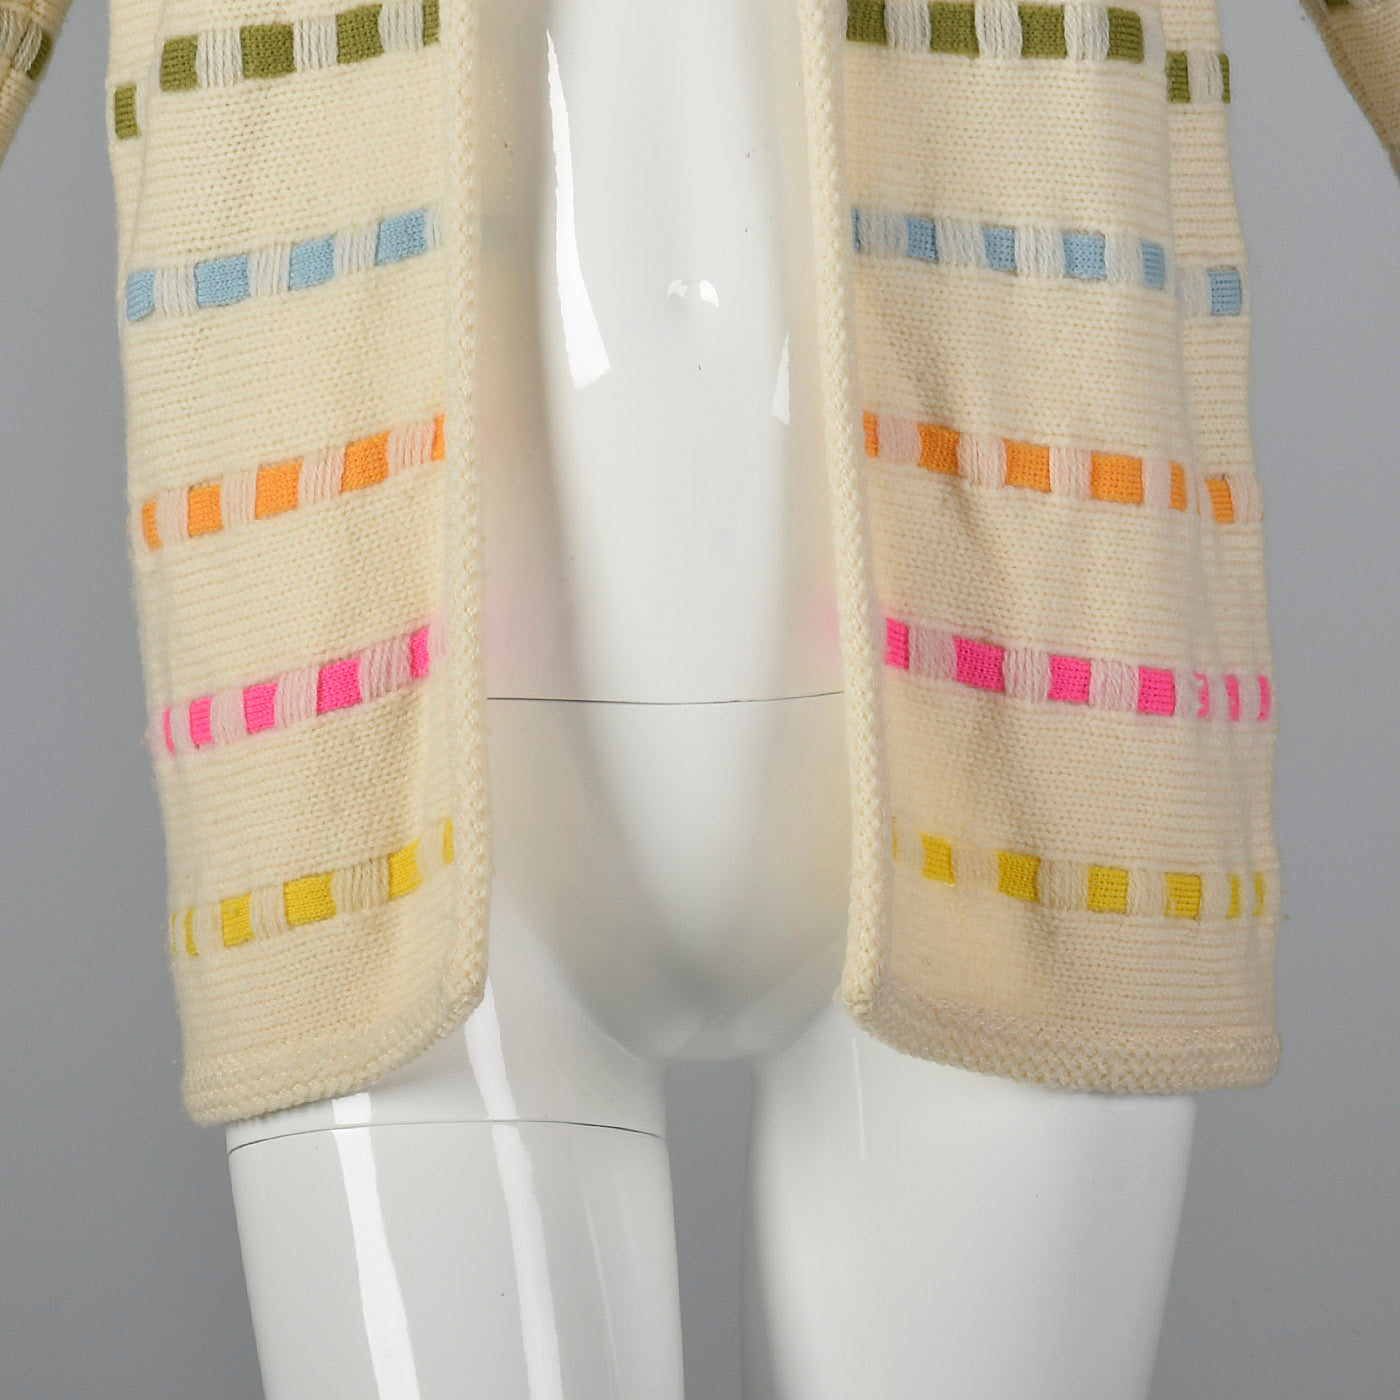 1960s Multicolor Striped Cardigan